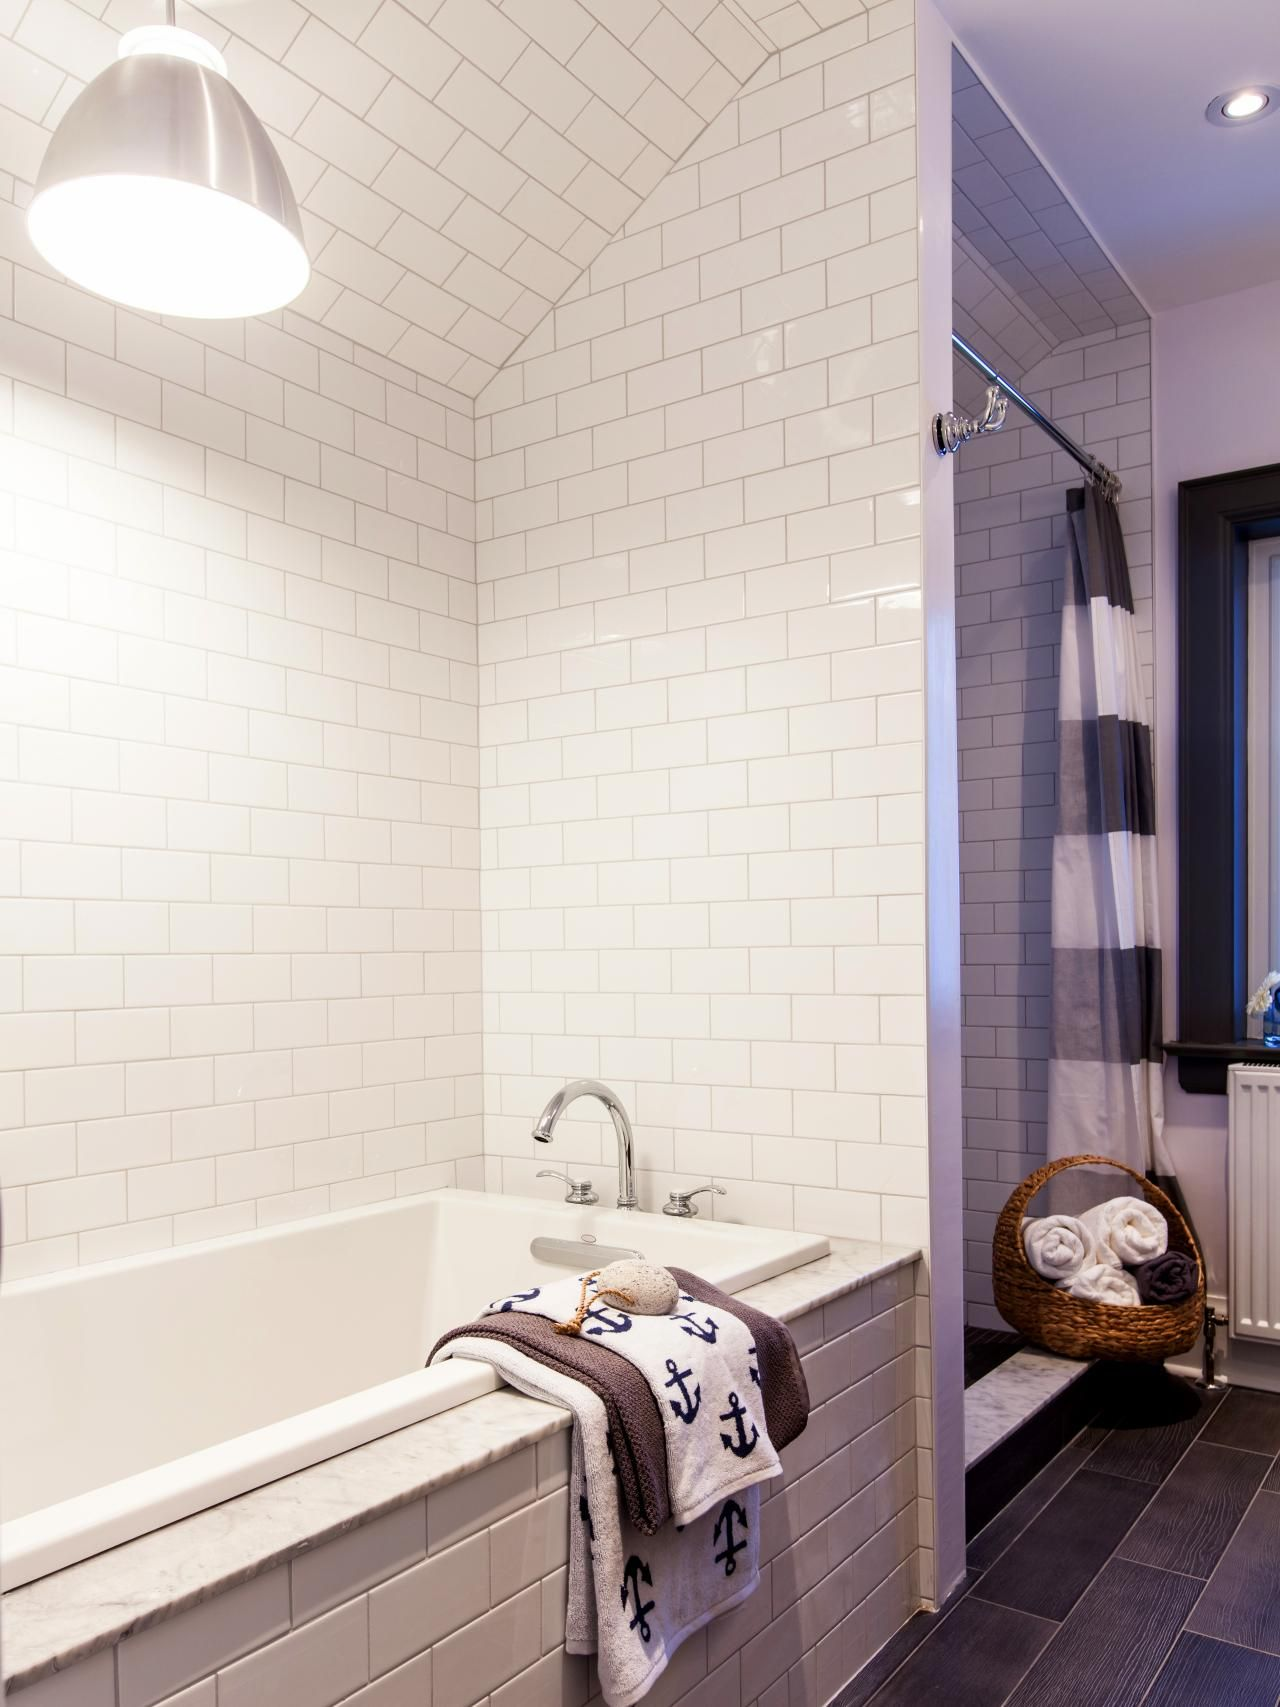 Best Bathroom Remodeling Trends Pinterest White Subway Tiles - 10 best bathroom remodeling trends